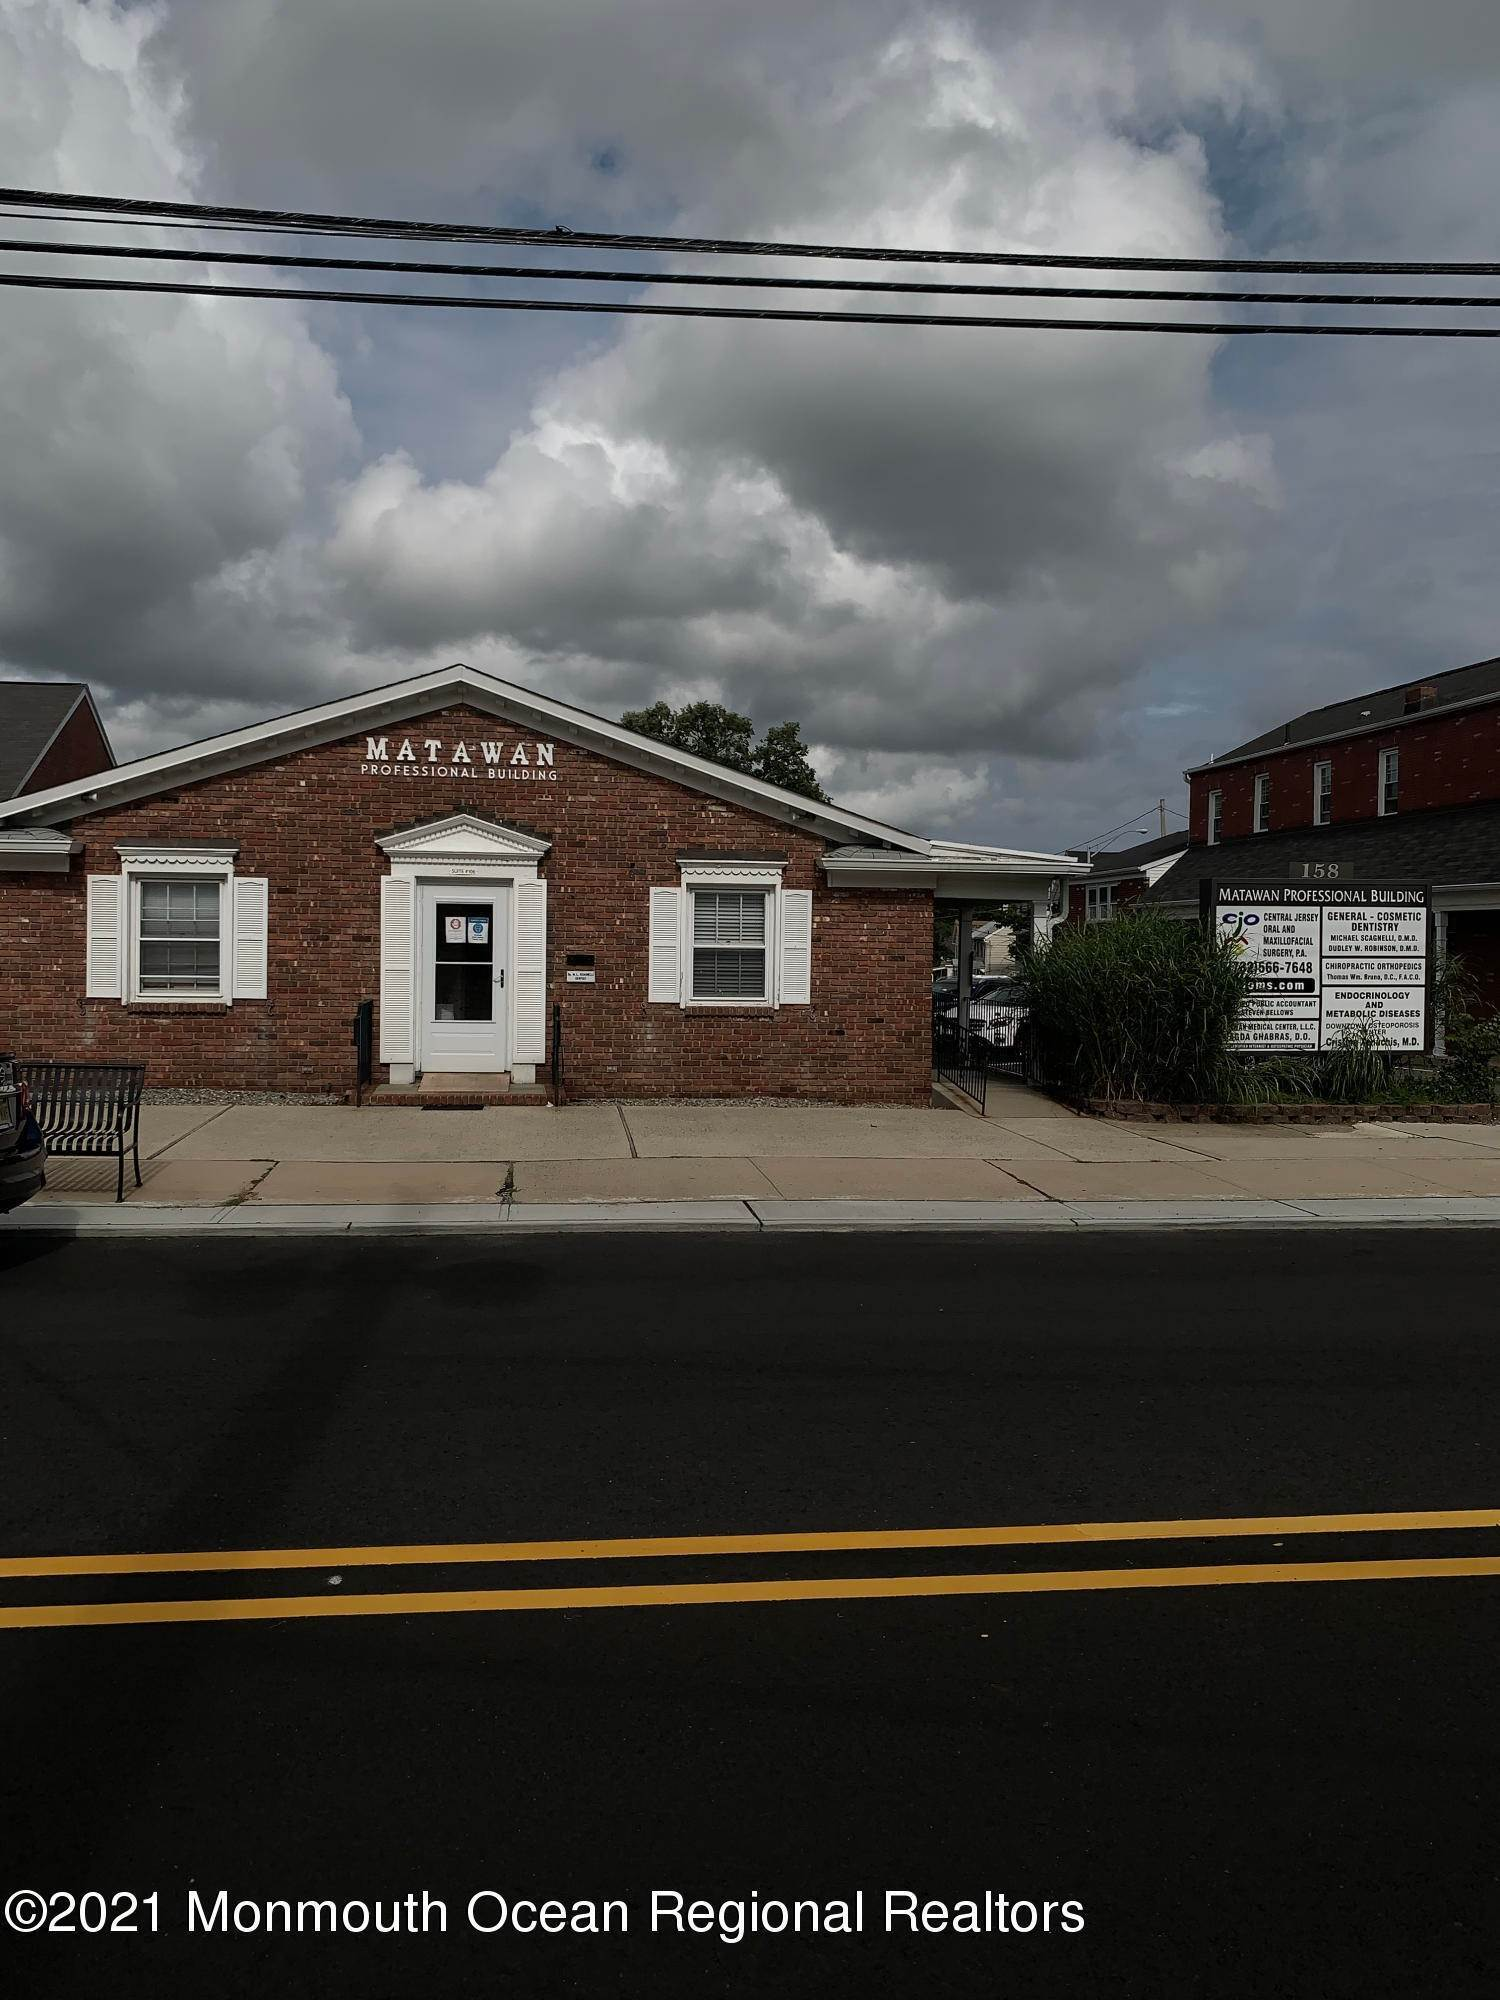 8. Commercial for Sale at 158 Main Street Matawan, New Jersey 07747 United States